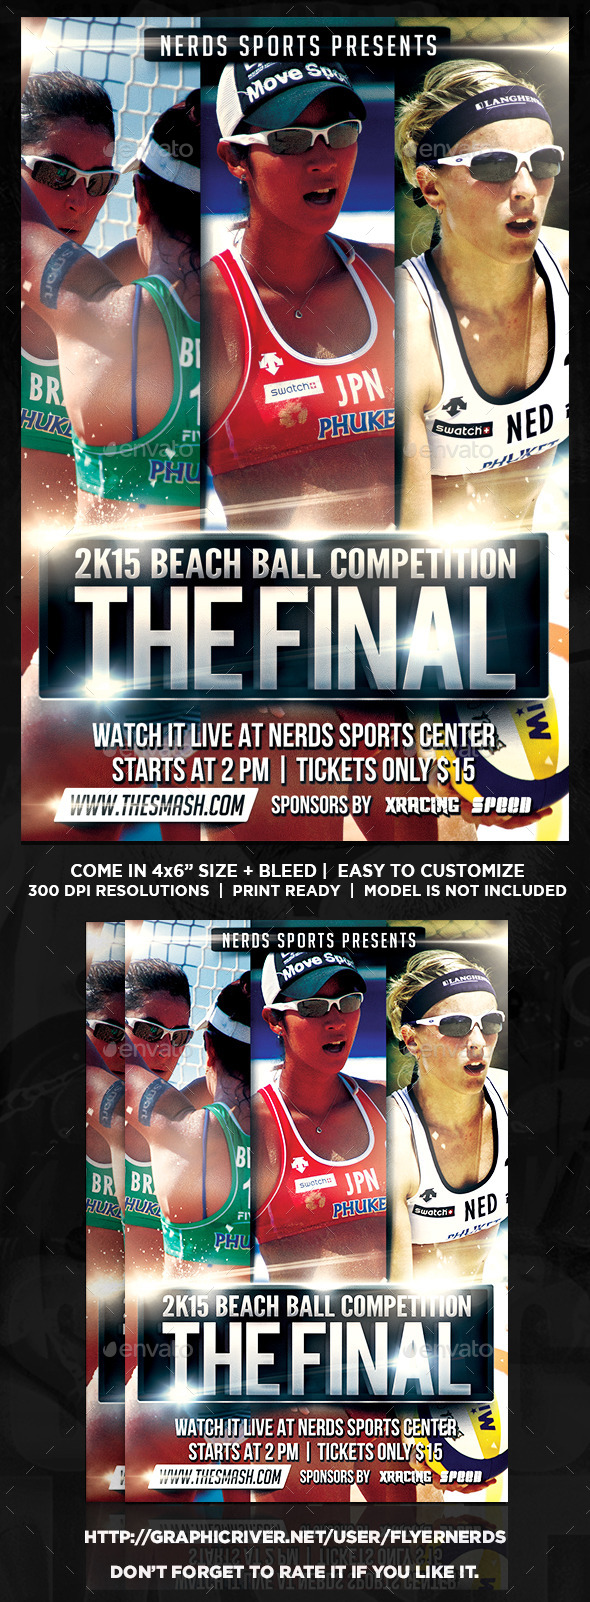 GraphicRiver 2K15 Beach Ball Competion Sports Flyer 10870652